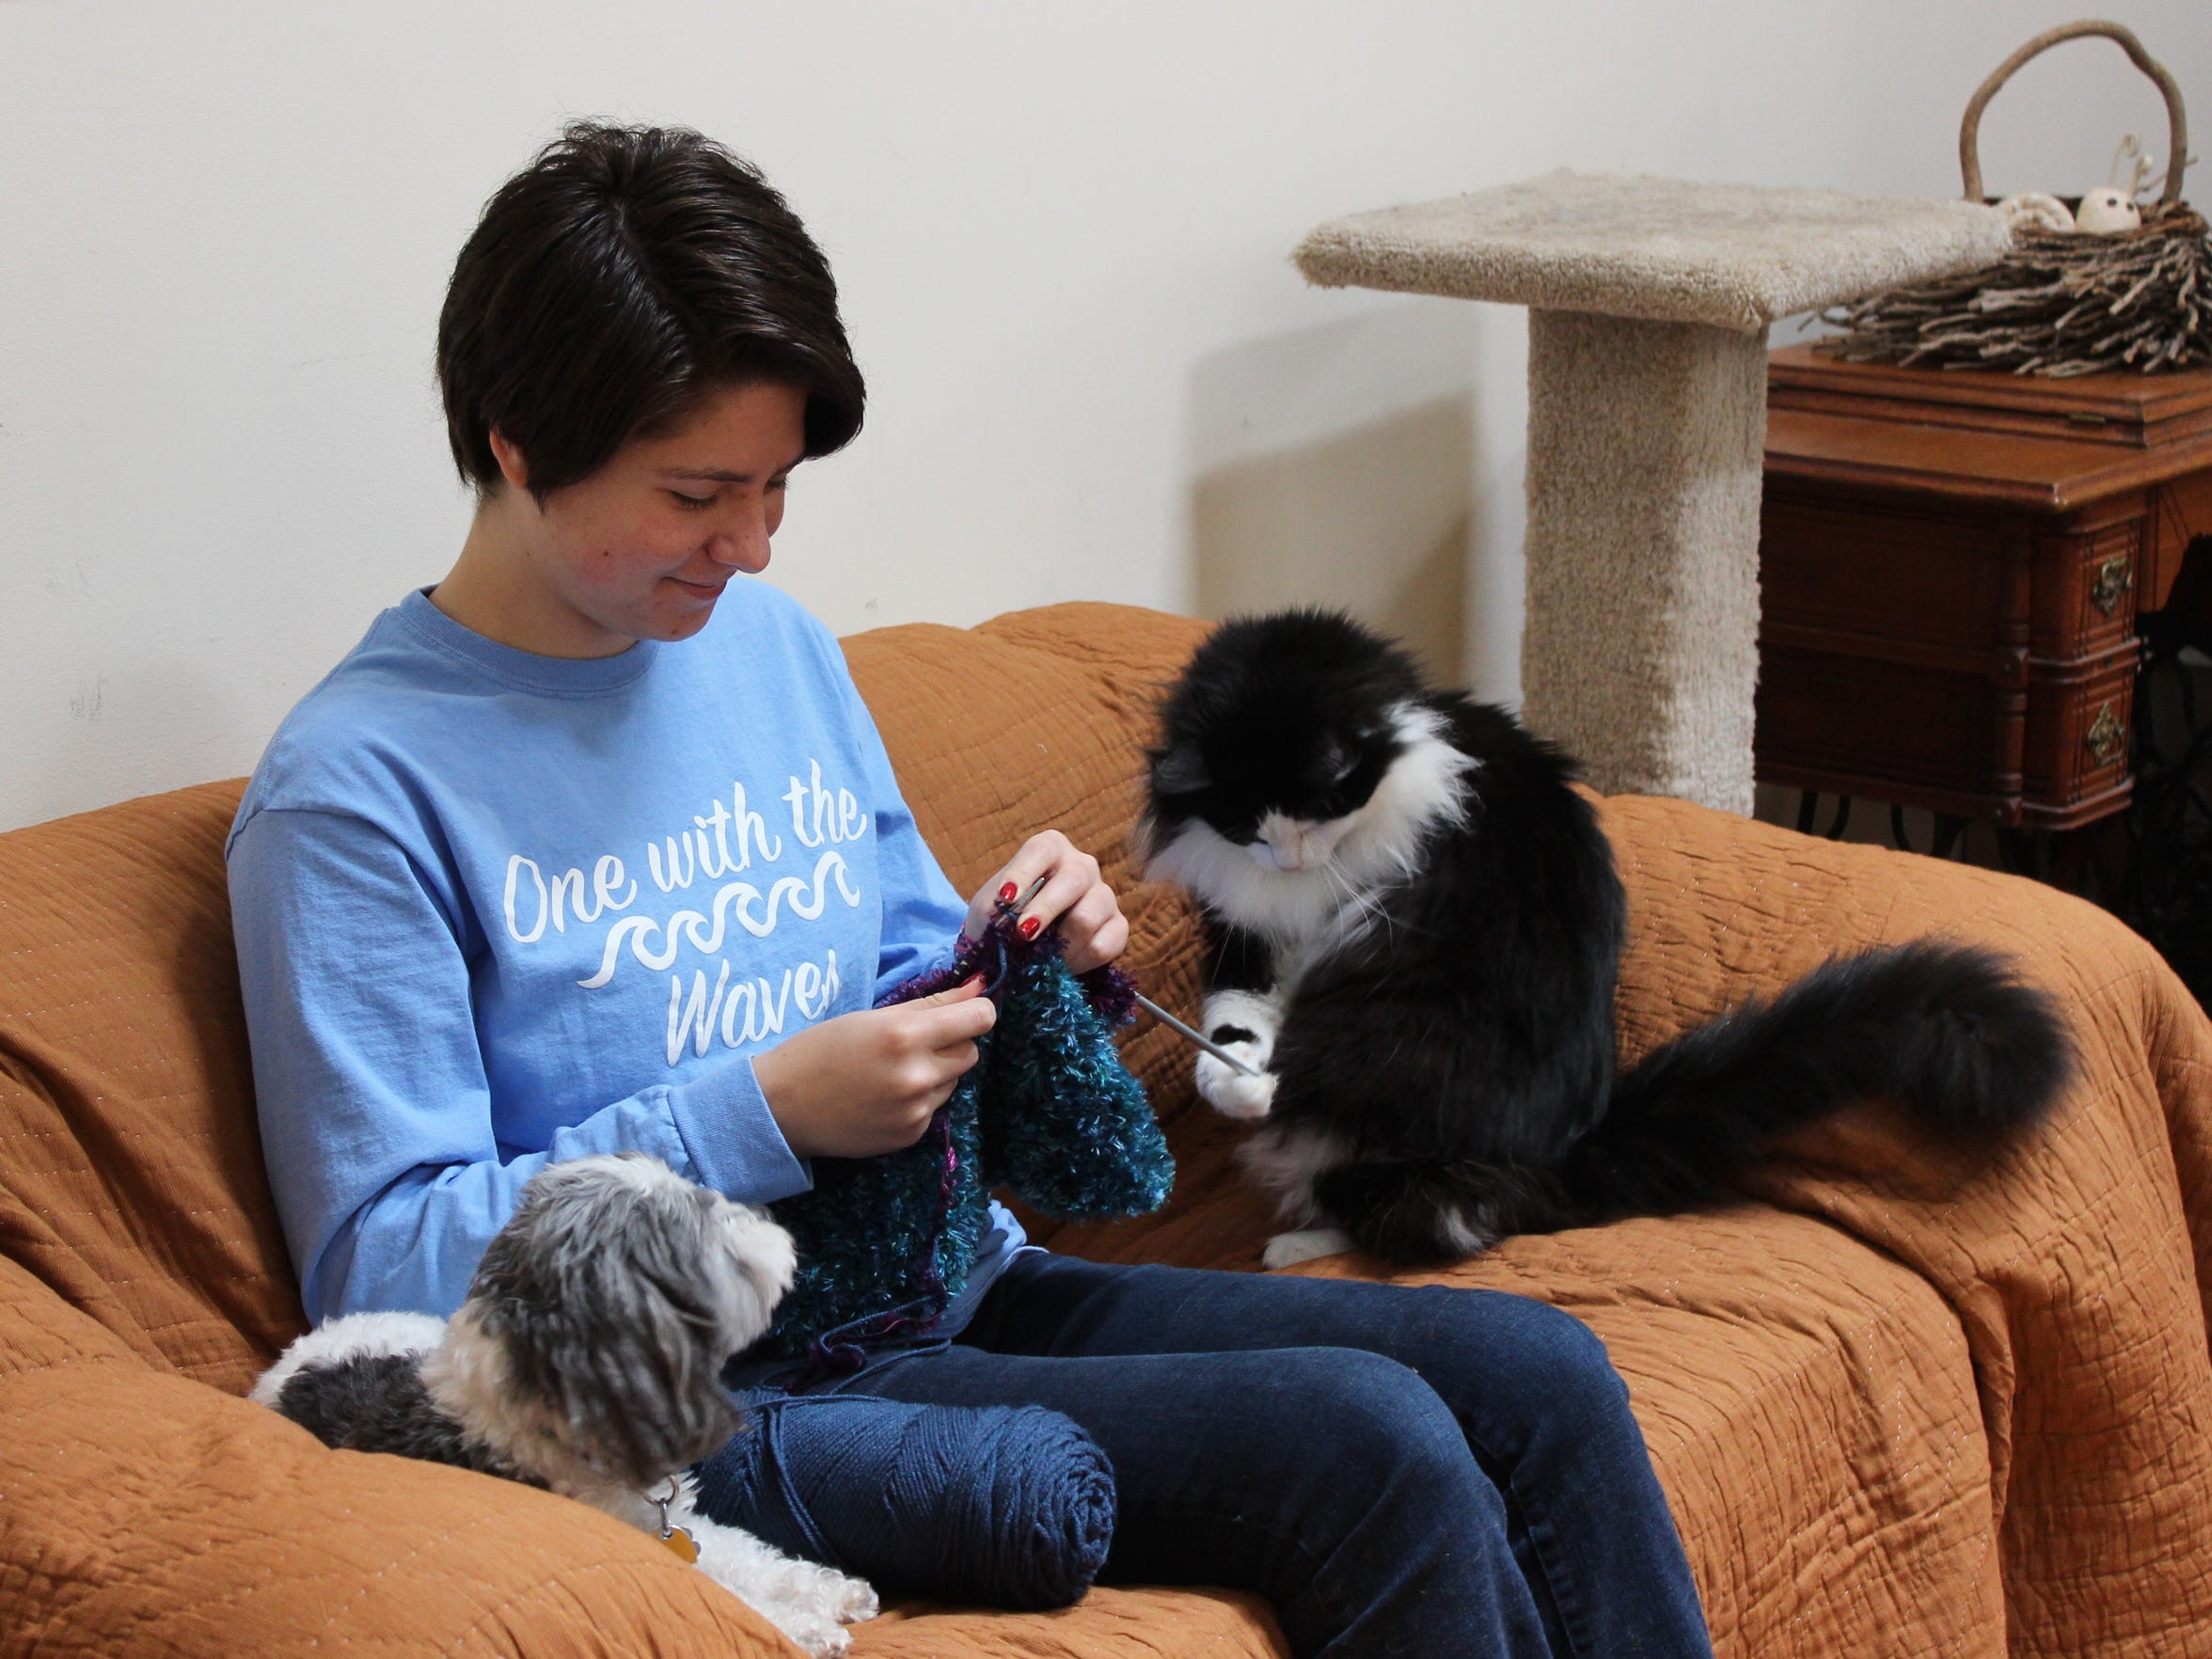 Sierra RyanWallick has knitted 1,300 items to help Forgotten Cats, a Greenville nonprofit group that helps feral cats and cats needing adoption. She has won a Jefferson Award for her contributions.